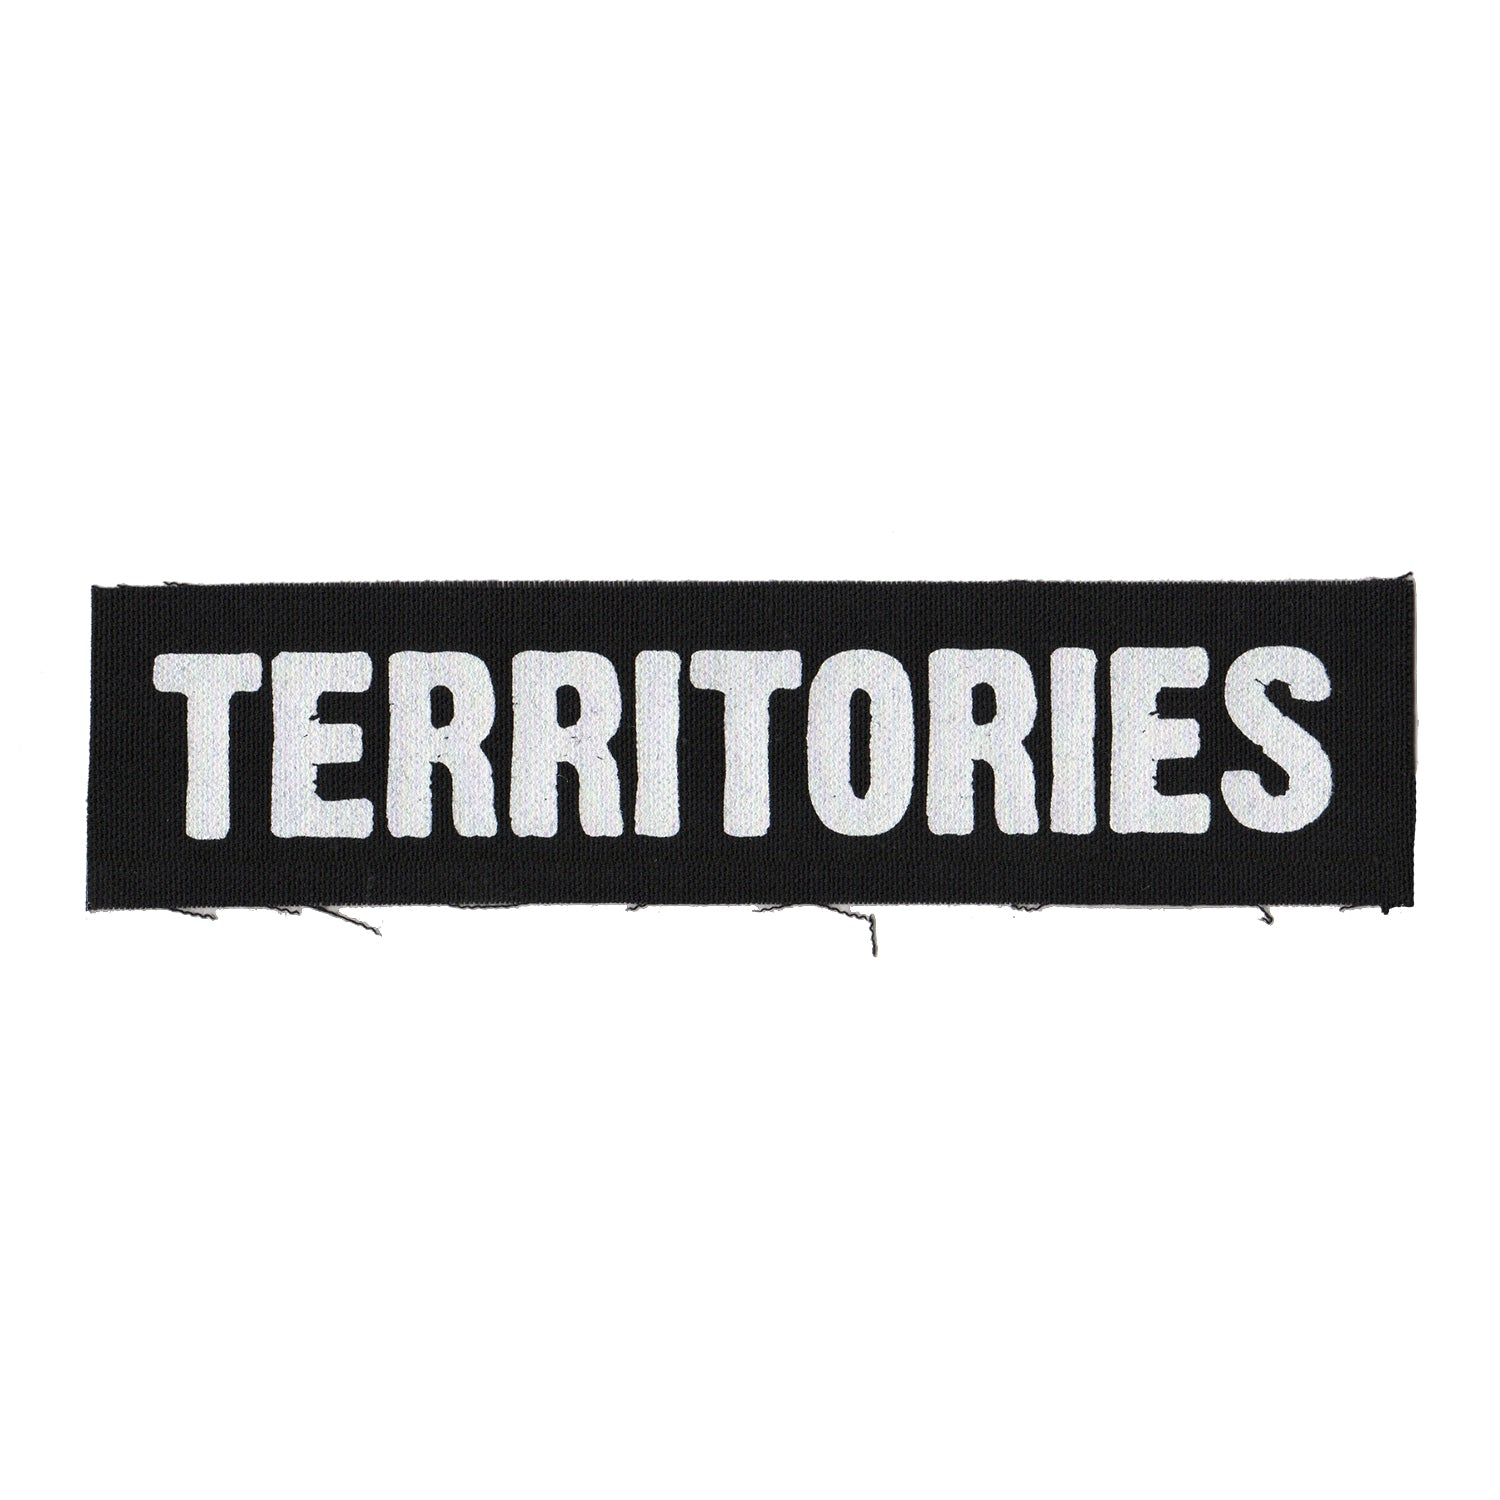 "Territories - Text Logo - Black - Patch - Cloth - Screenprinted - 8"" x 3"""